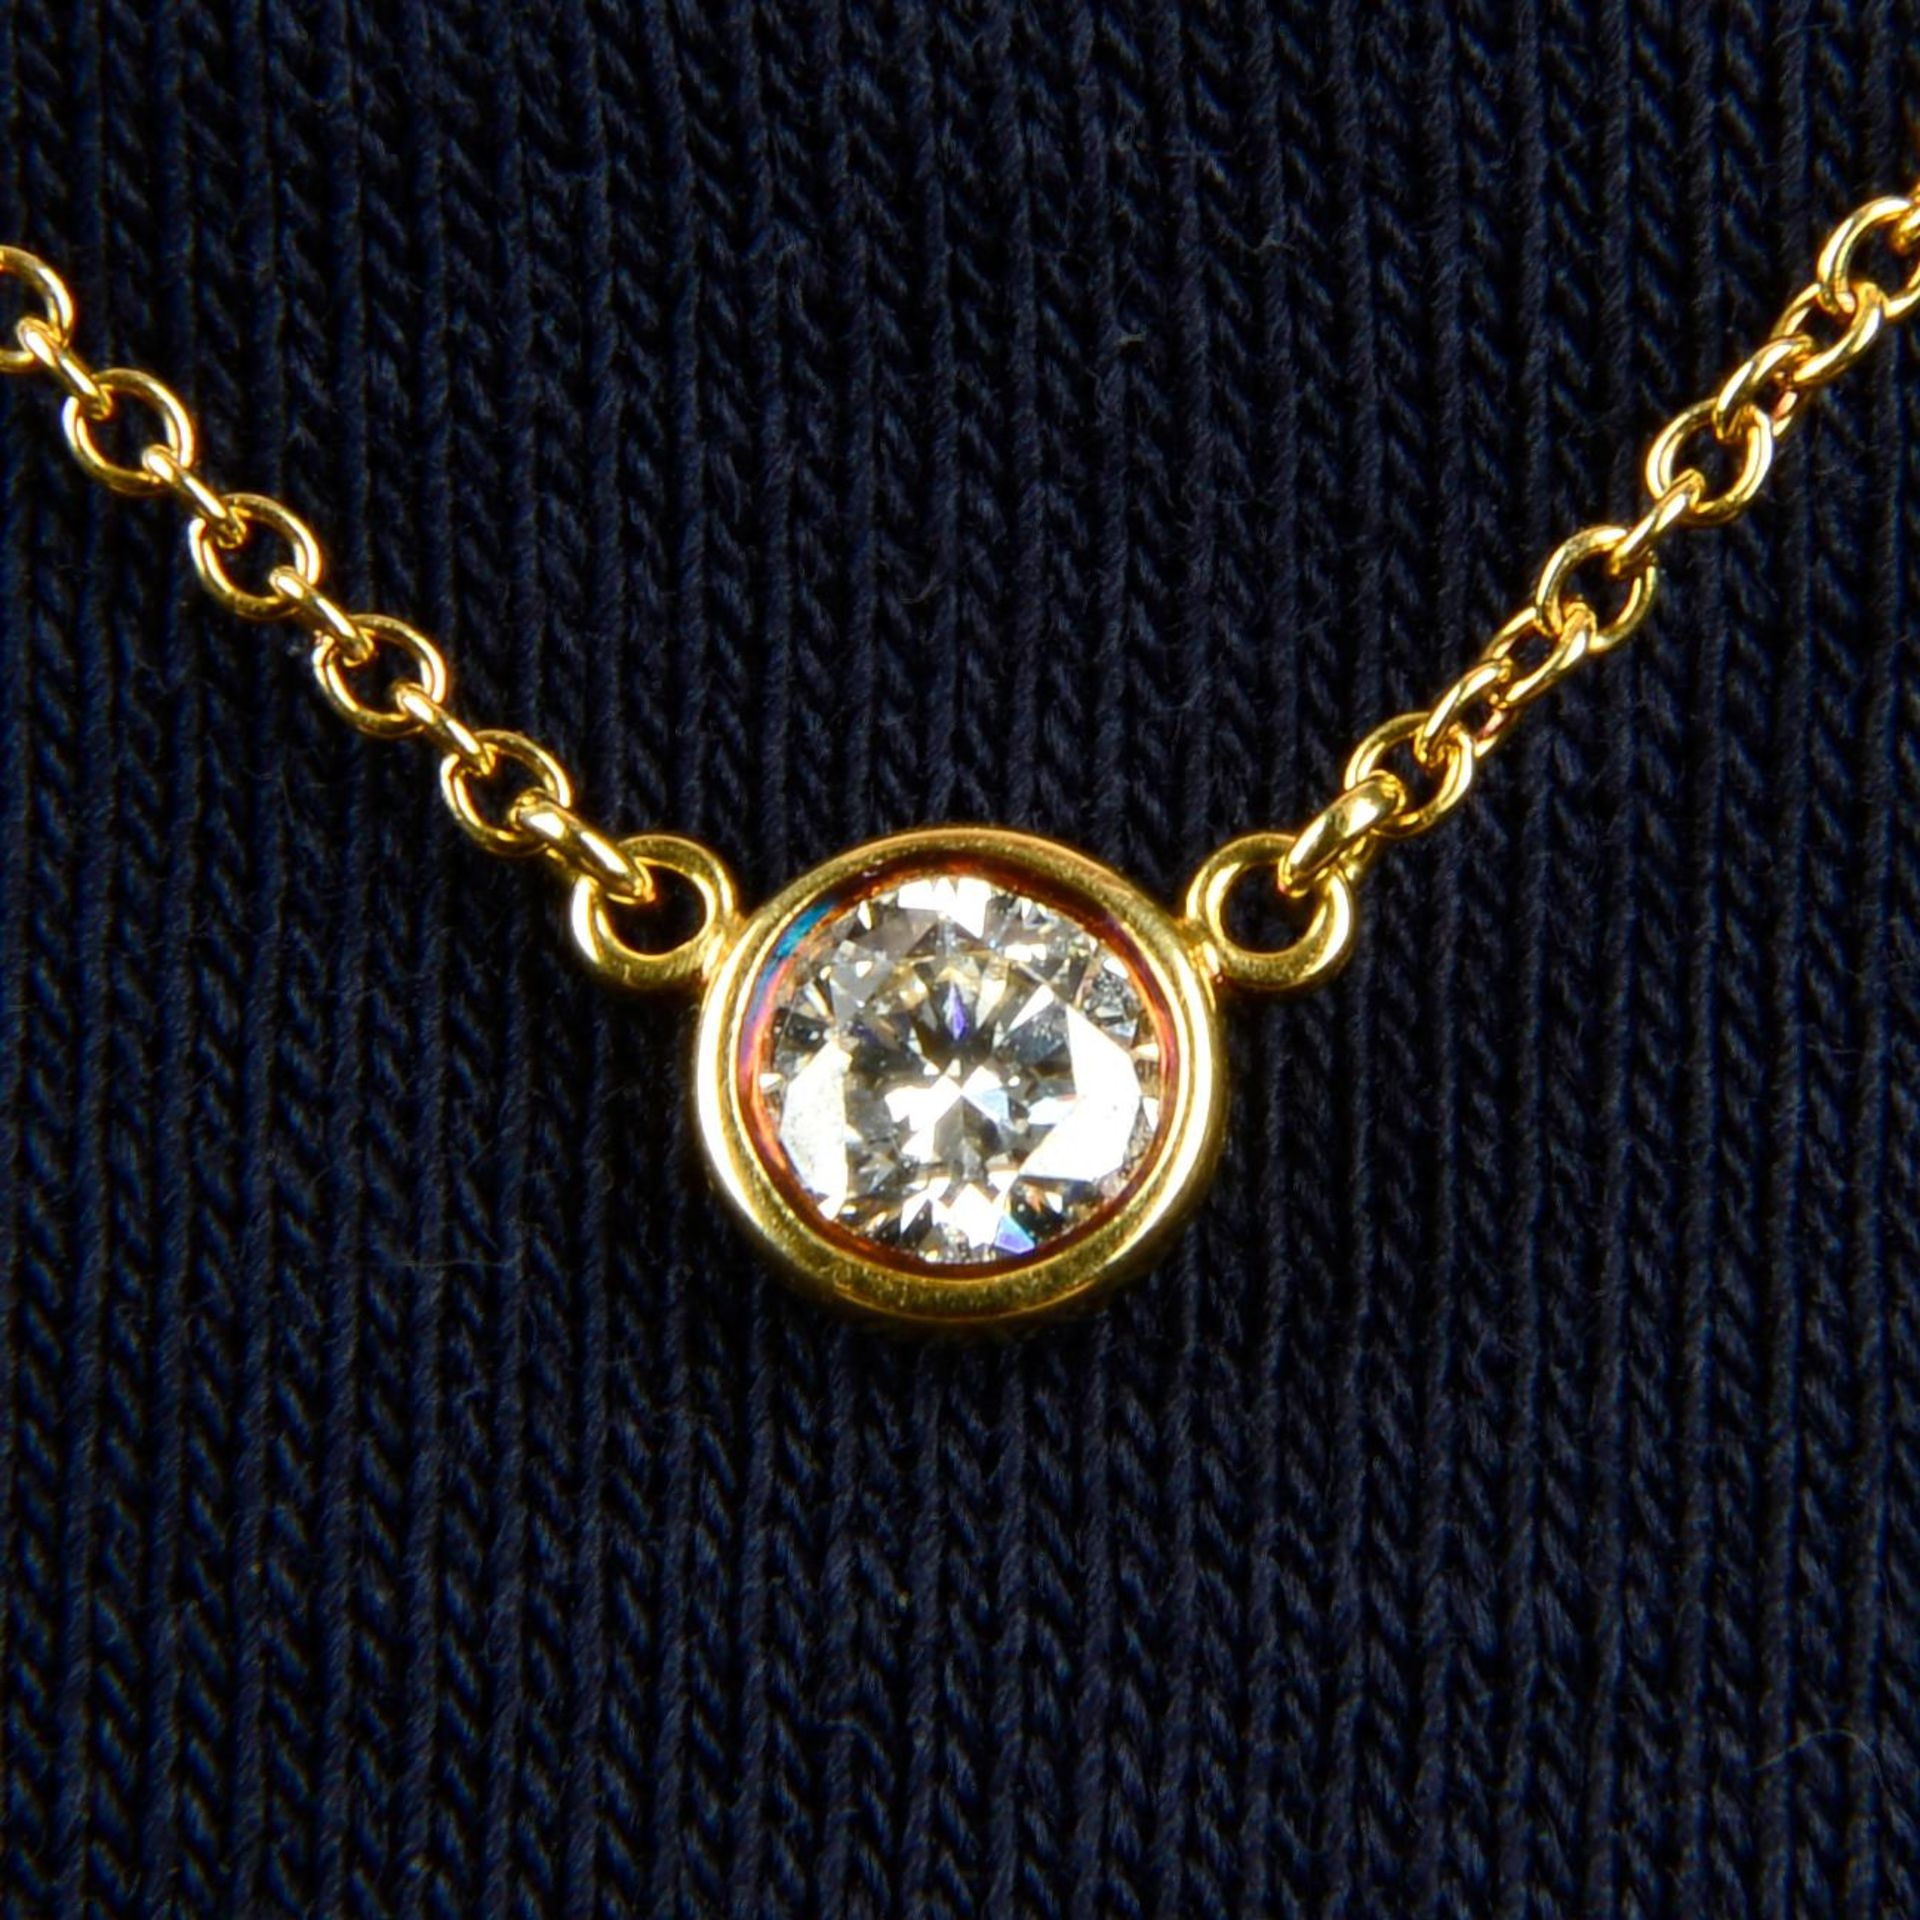 A 'Diamonds by the Yard' necklace,